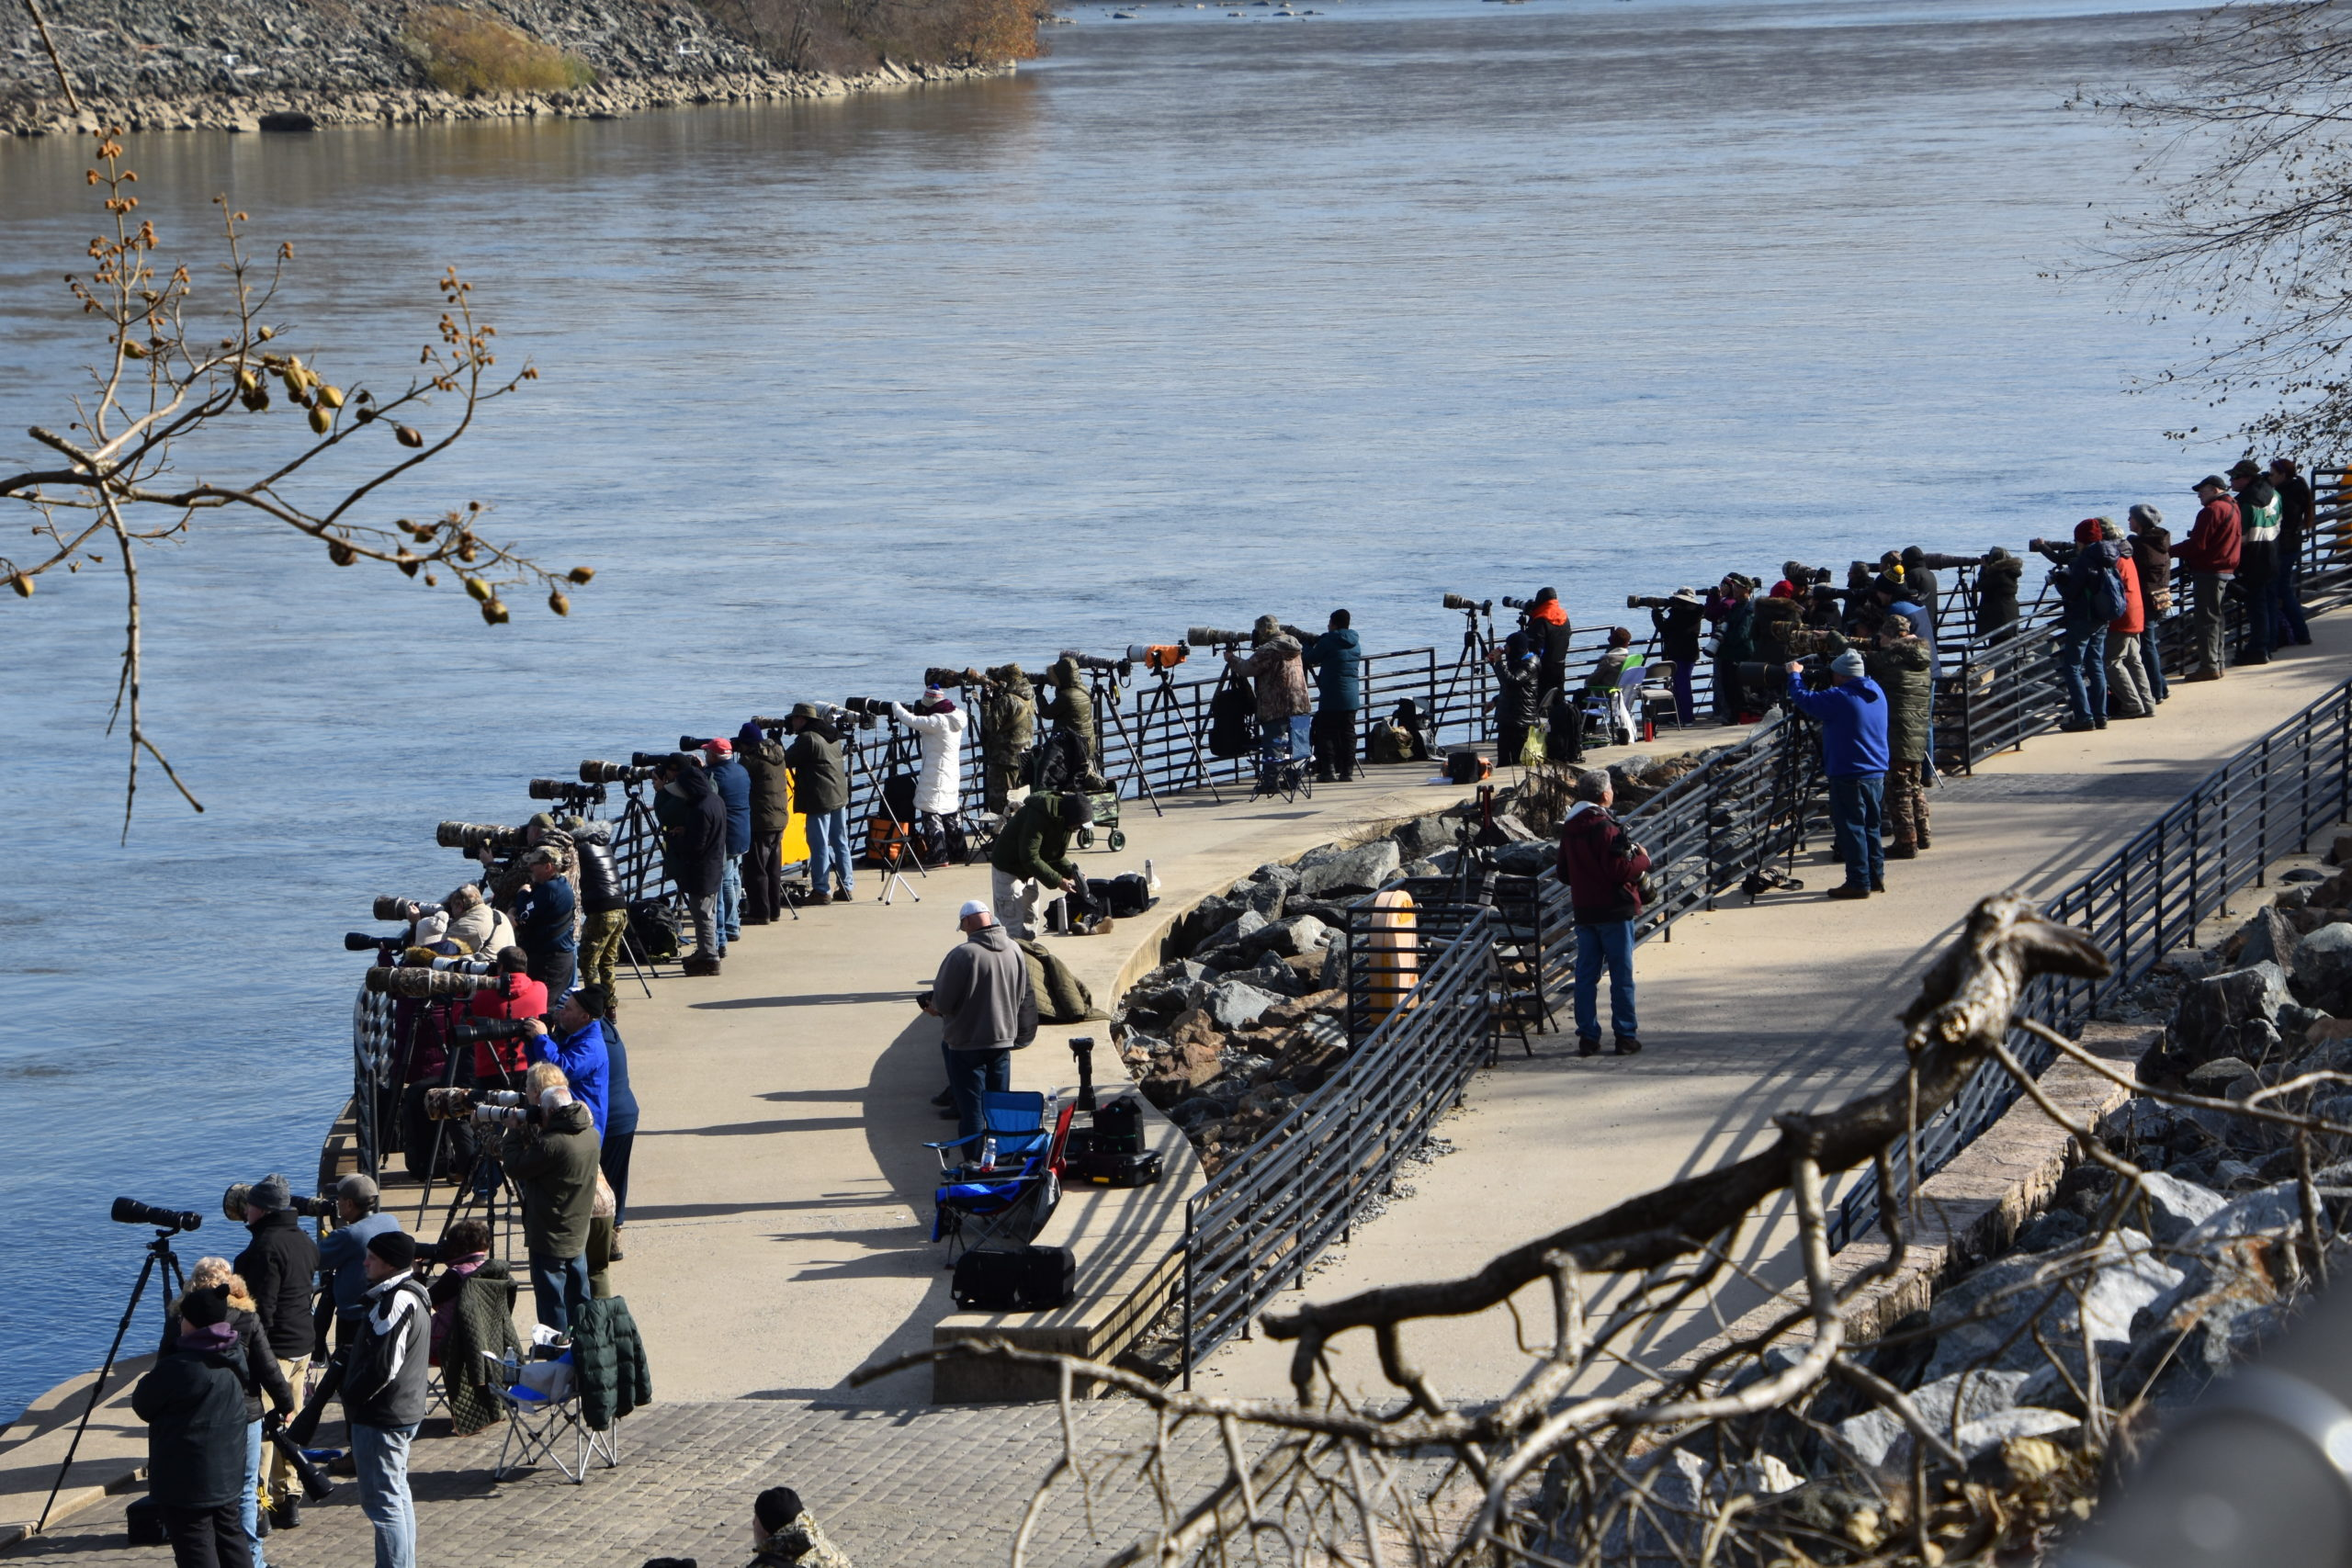 Photograph of a relatively large group of bald eagle watchers at Conowingo Dam on the Susquehanna River in Maryland.